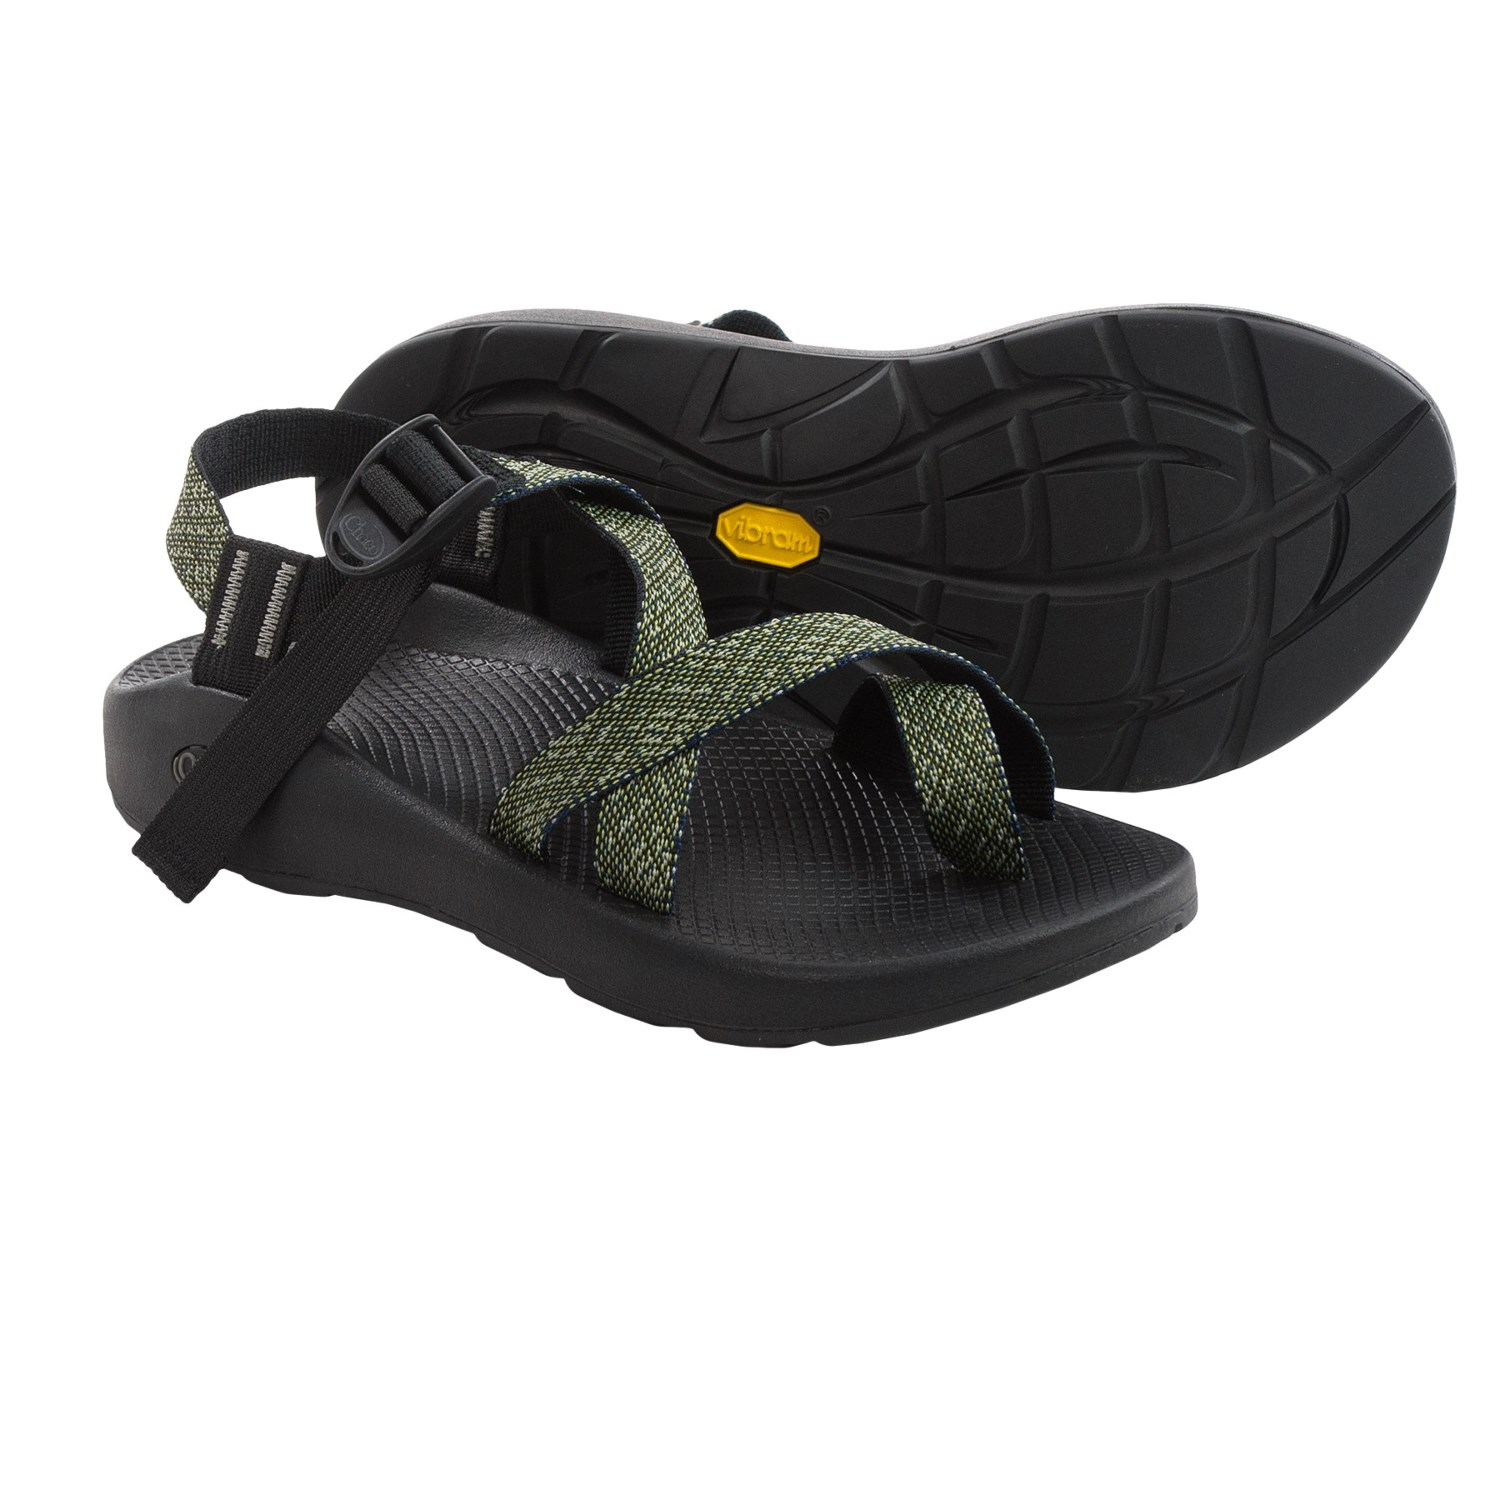 Chaco Z 2 174 Yampa Sport Sandals For Men 102jv Save 42